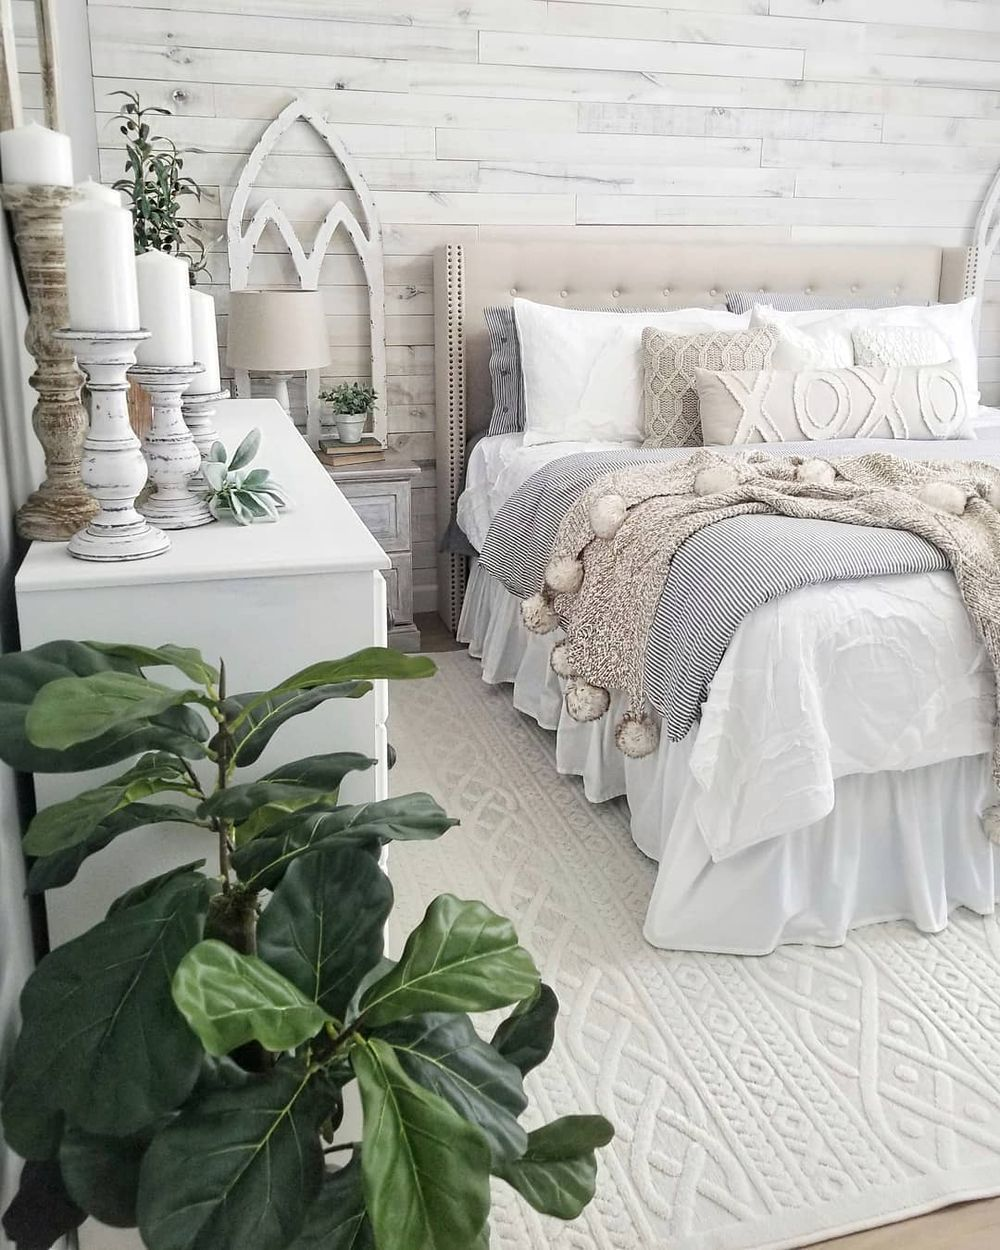 19 Farmhouse Winter Decor Ideas –  Winter blankets in a farmhouse bedroom @blessed_ranch – winter bedroom decor ideas this way! Best –